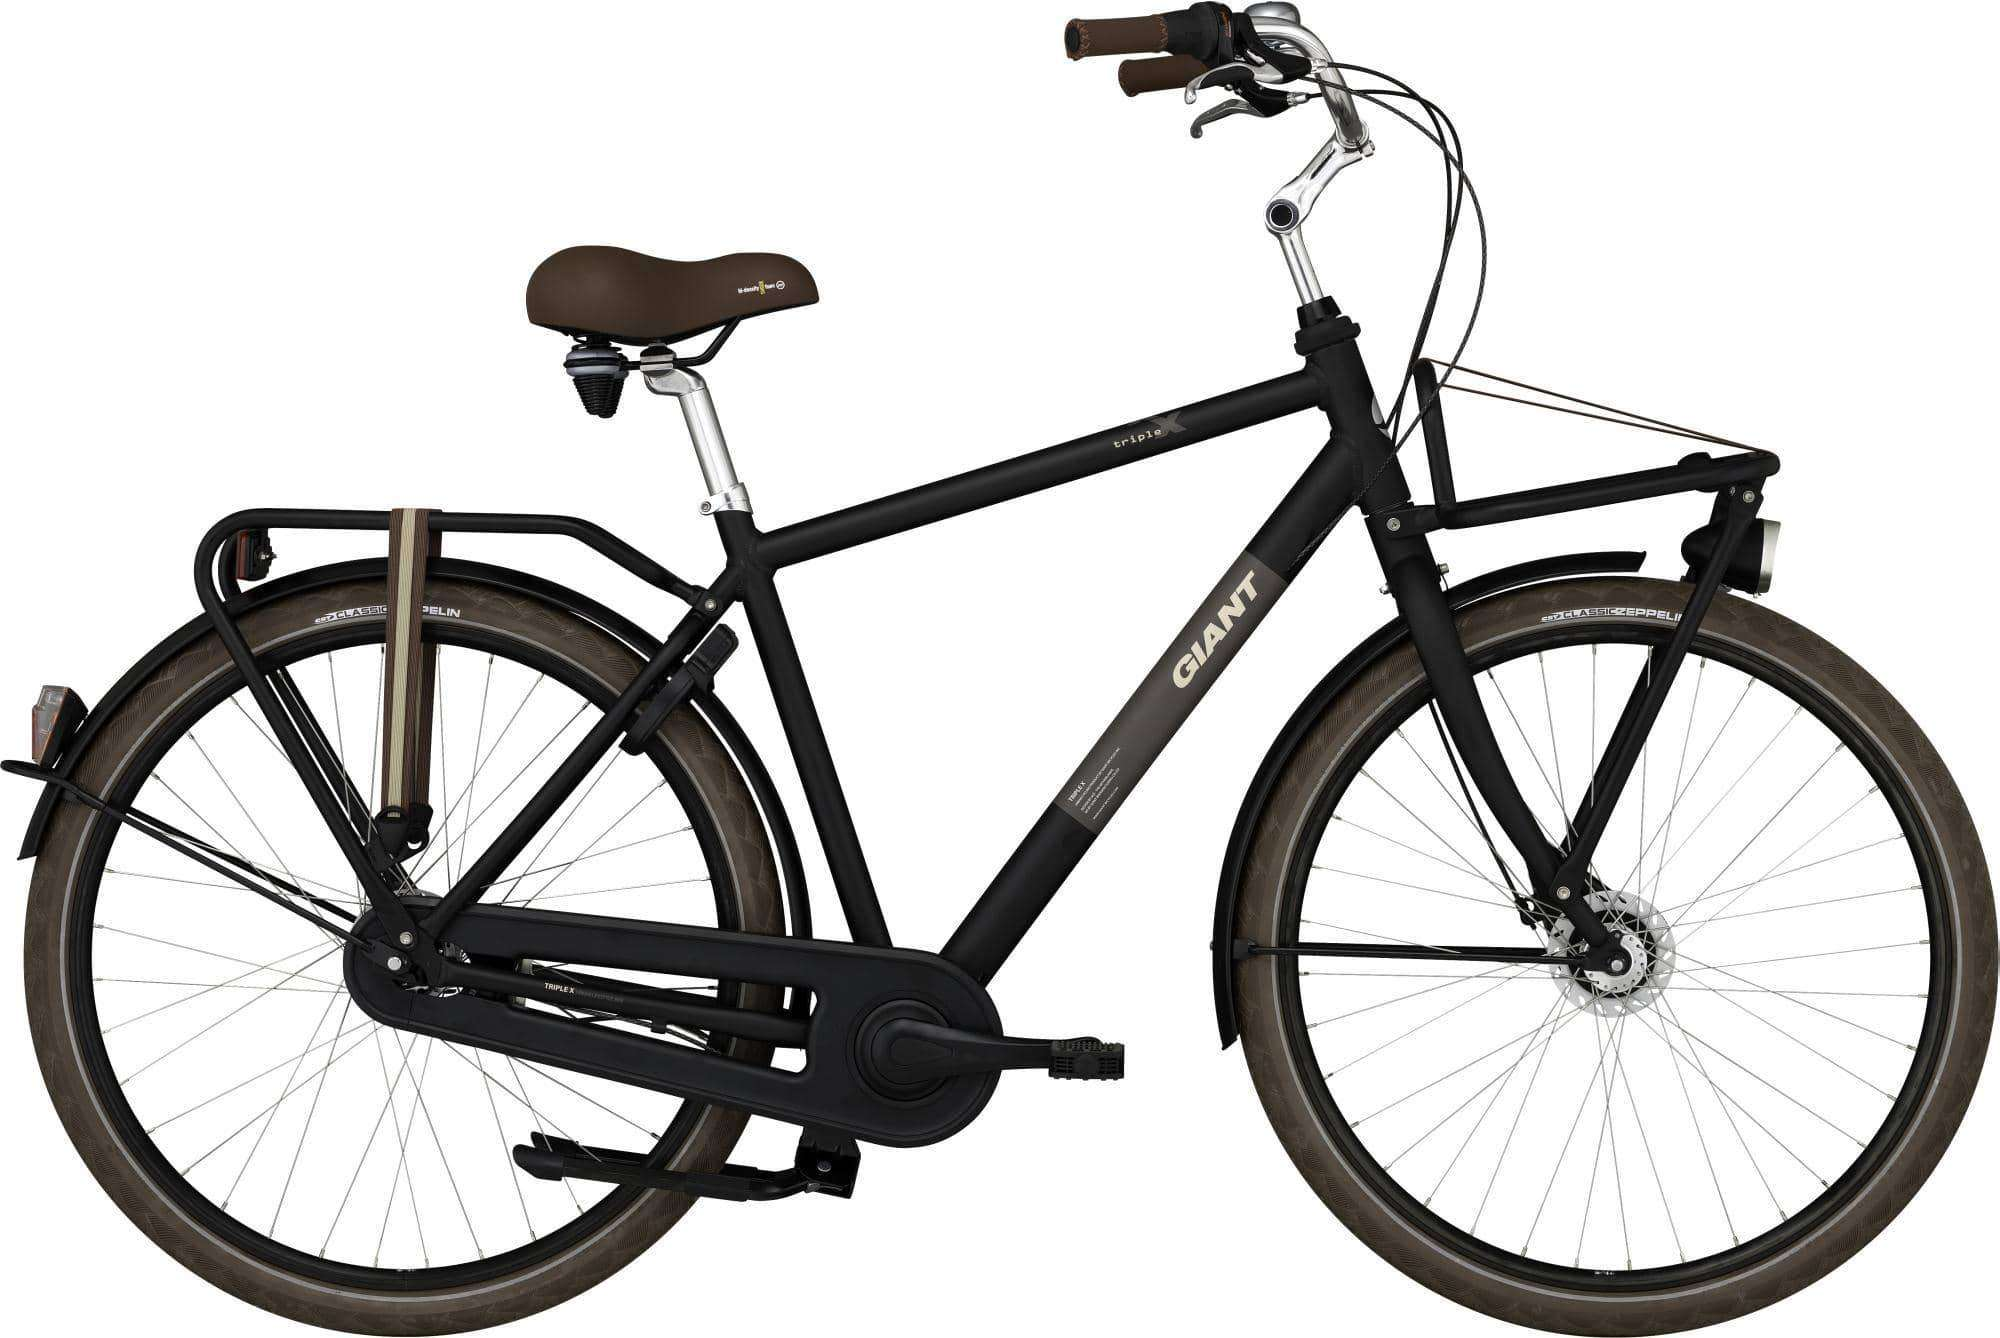 Giant Triple X CS 1 2015 Heren - Fietsenconcurrent.nl